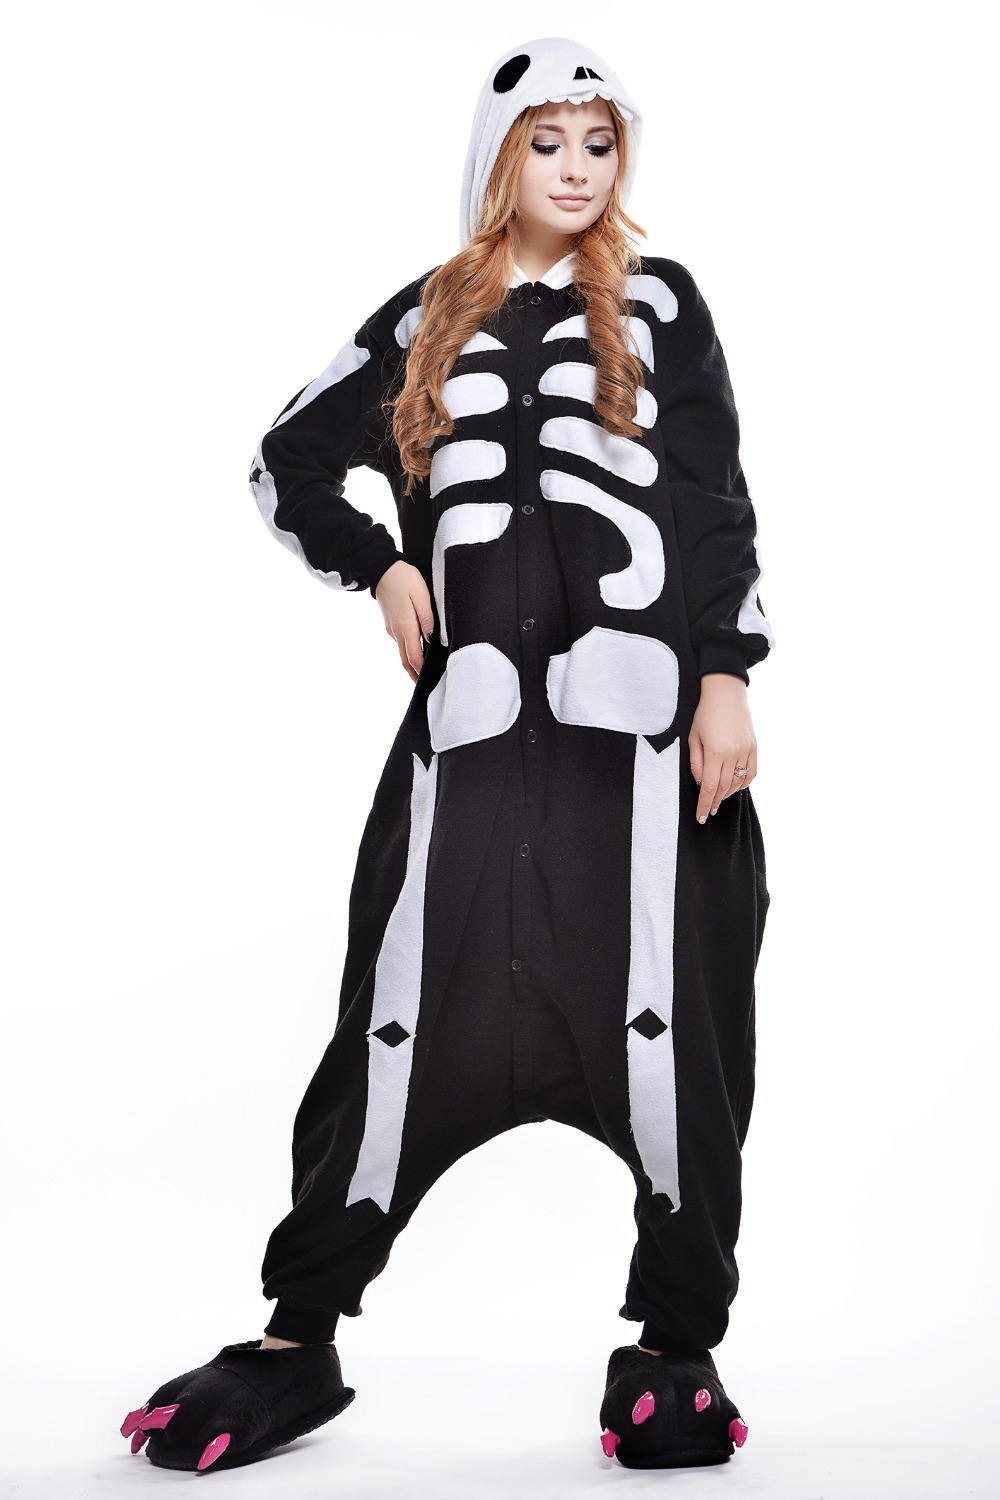 new autumnwinter cartoon skull onesie couples home dress halloween costumes for women and men skeleton anime cosplay clothing - Mens Couple Halloween Costumes